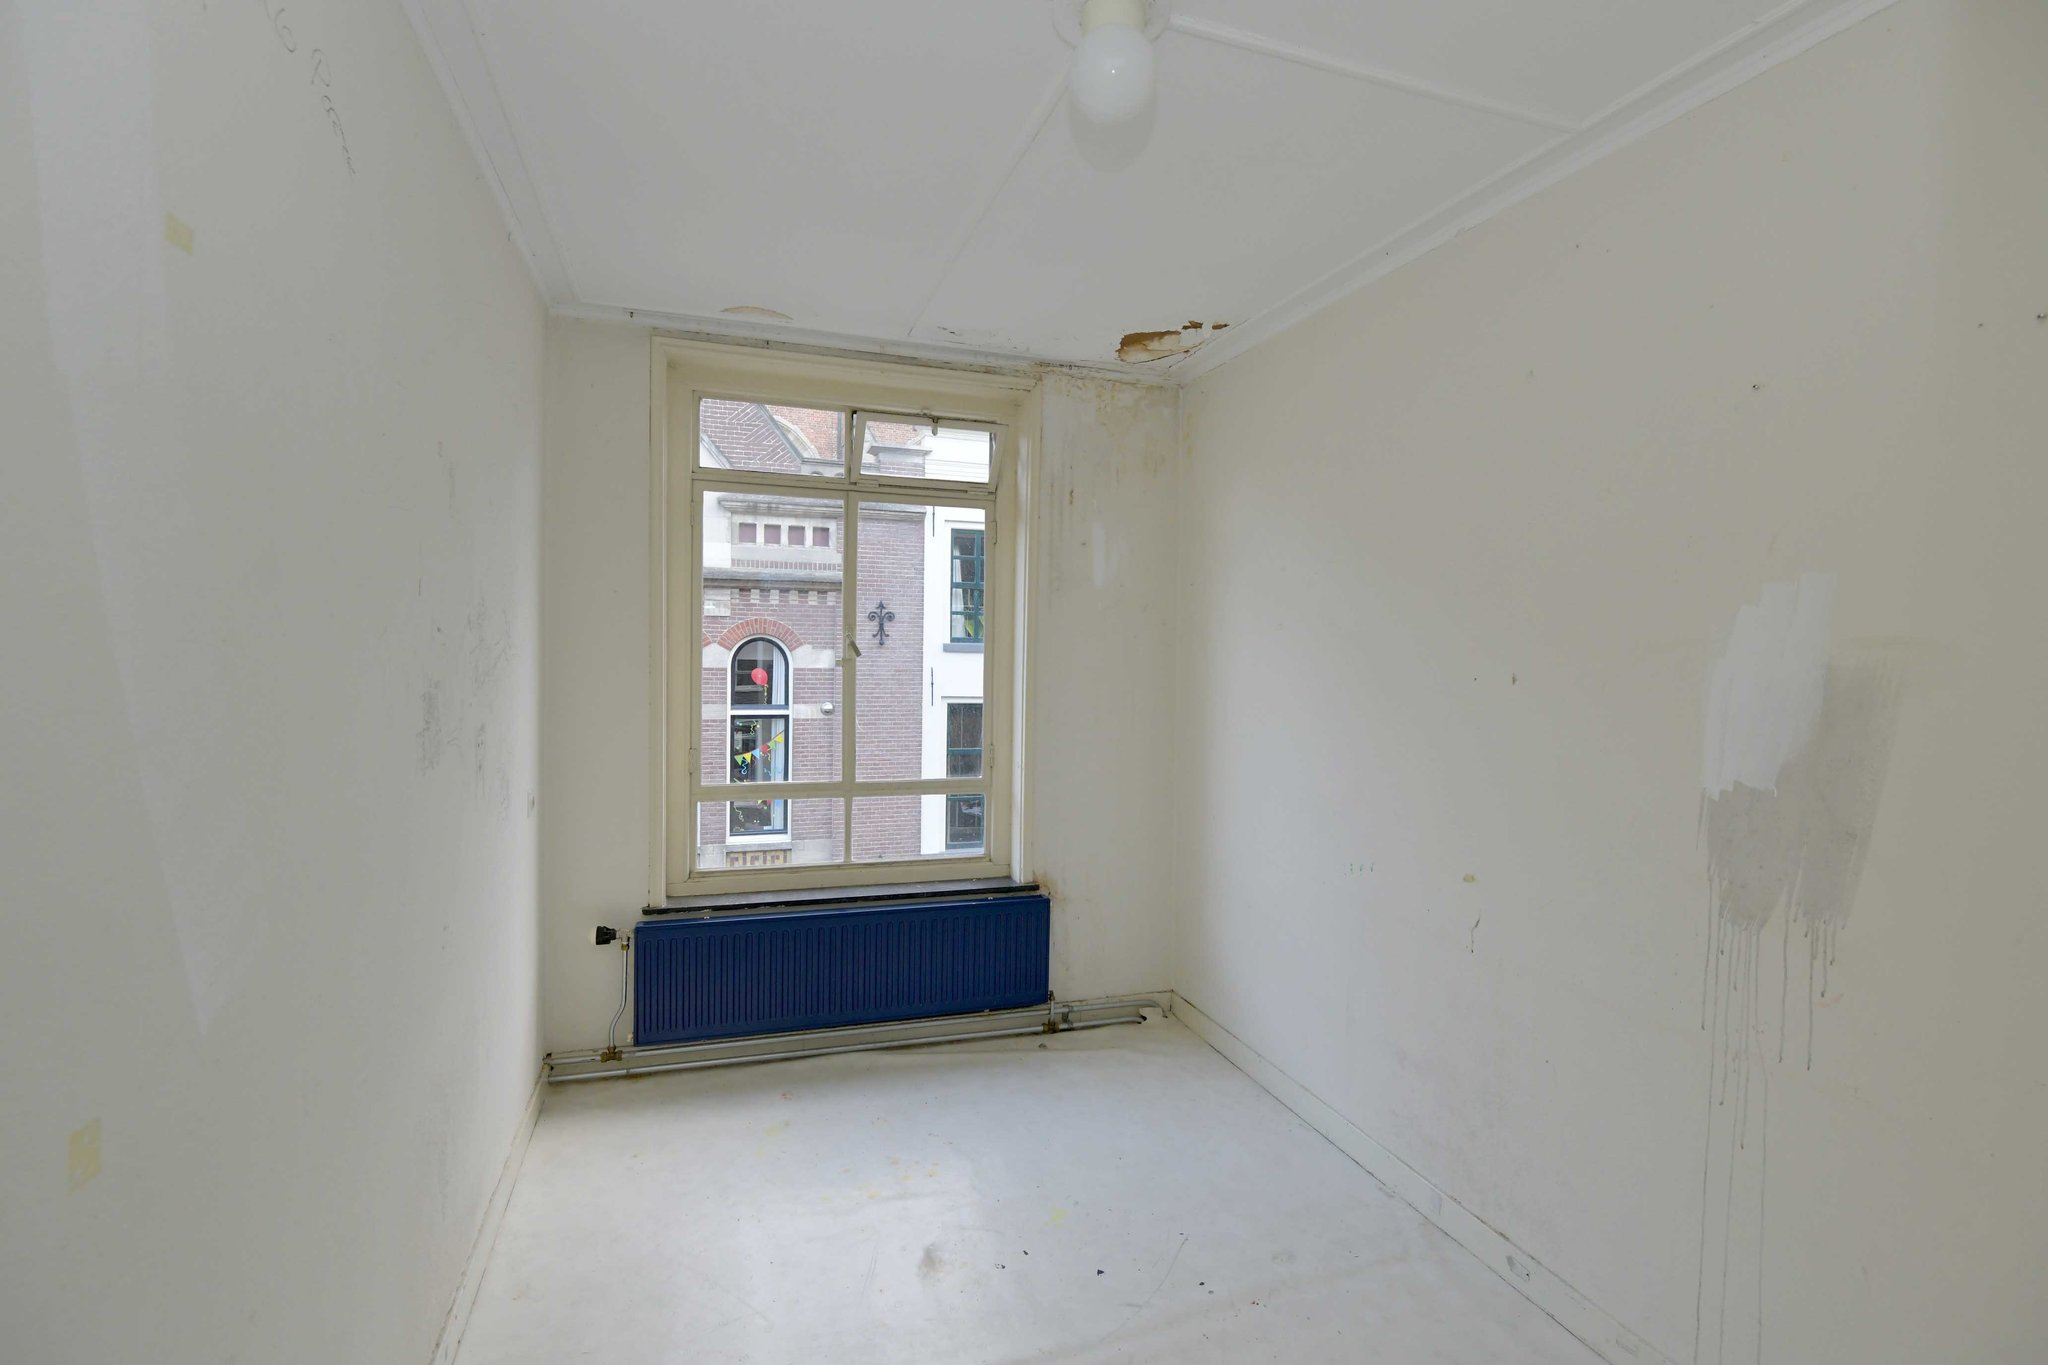 deventer-hofstraat-4209525-foto-23.jpg